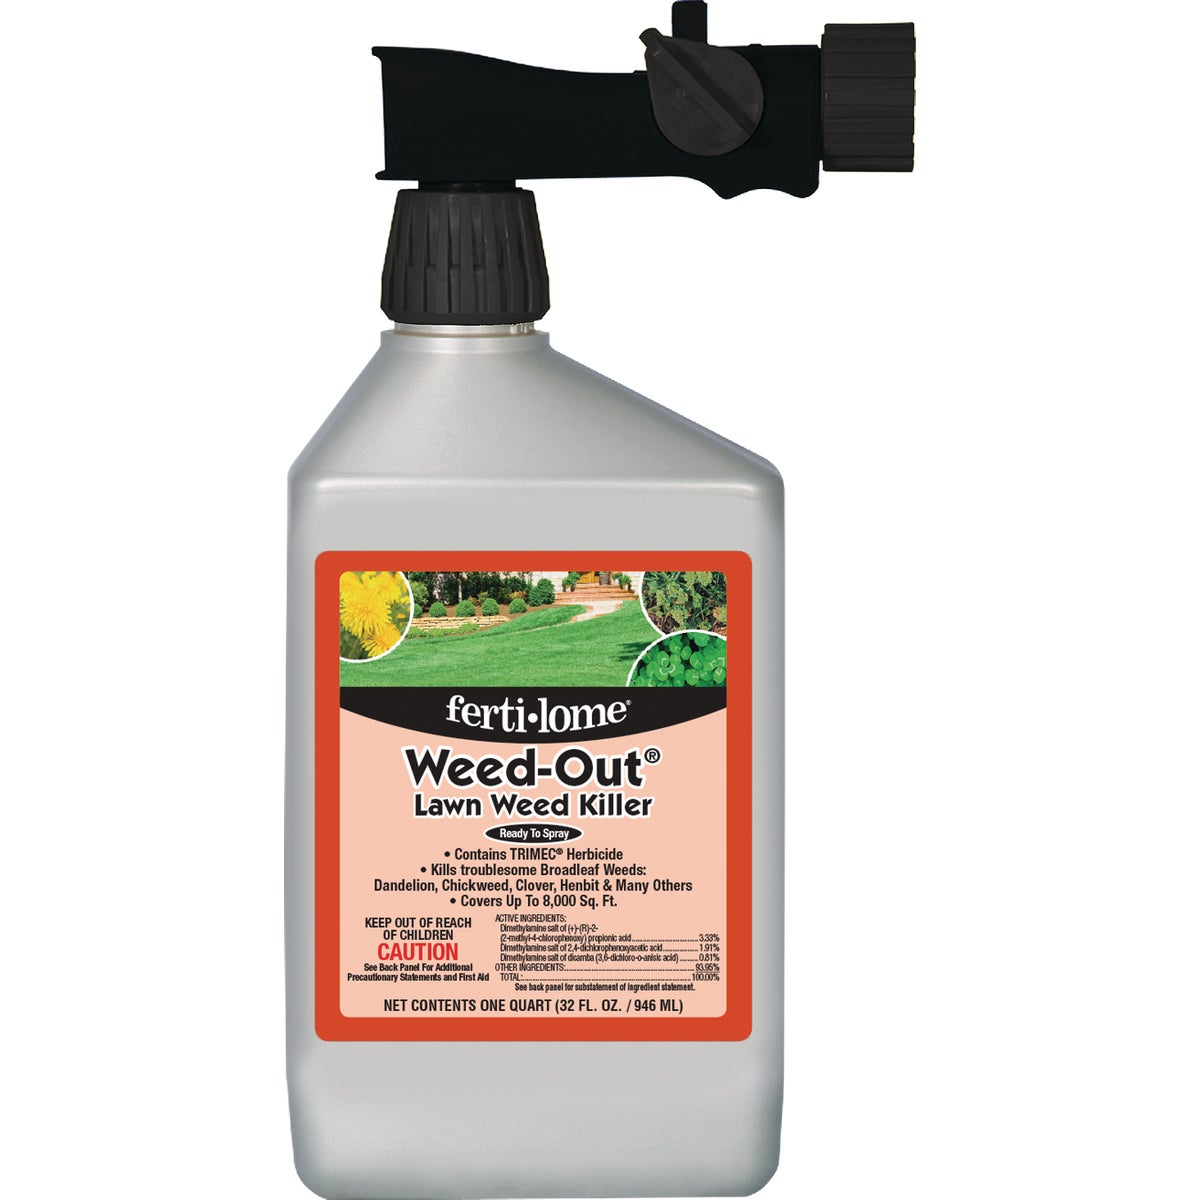 32OZ RTS WEED-OUT